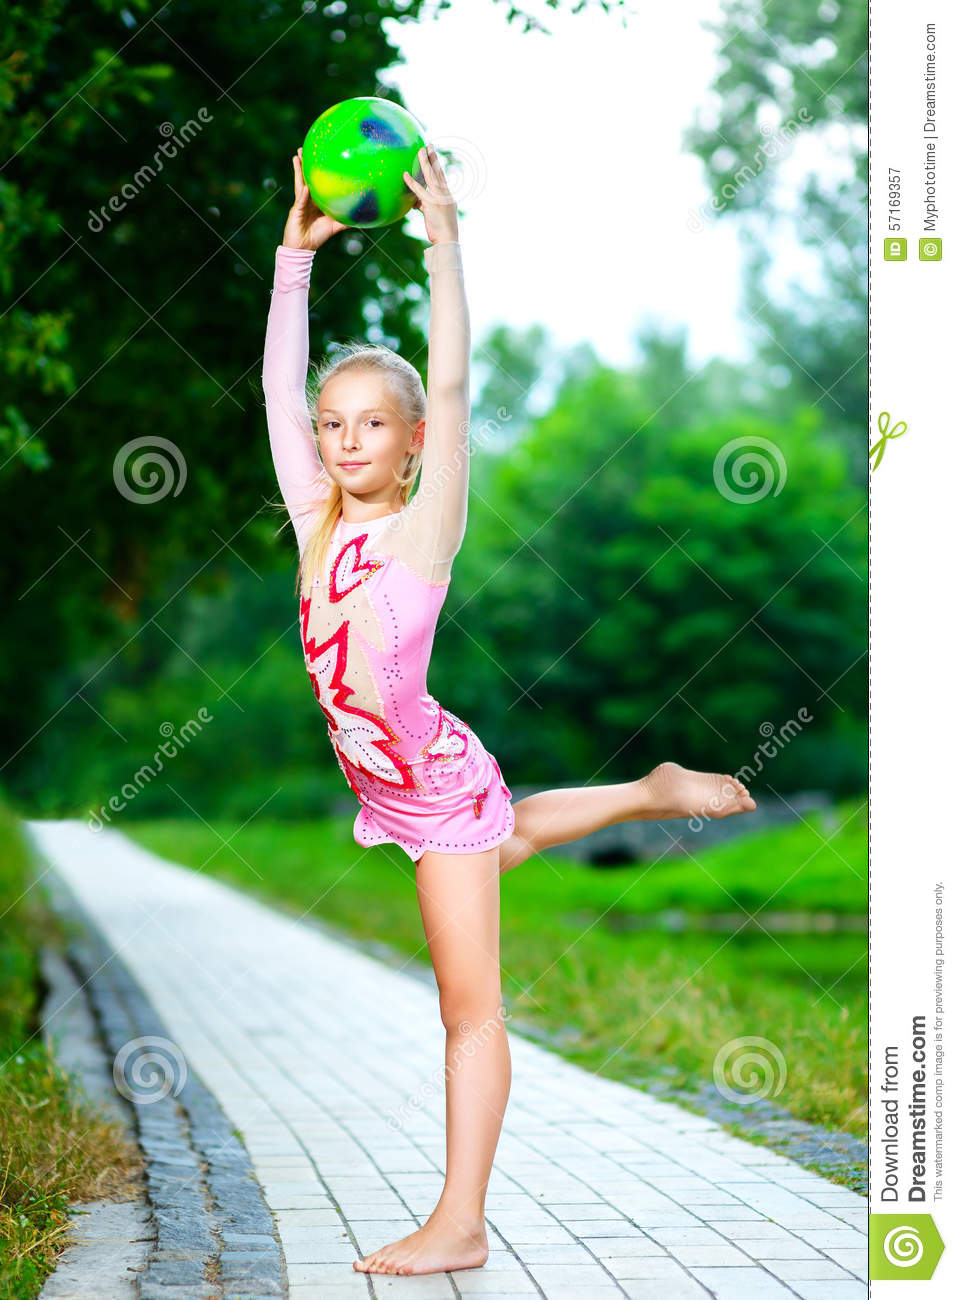 Flexible Little Girl Doing Gymnastics Vertical Stock Photo